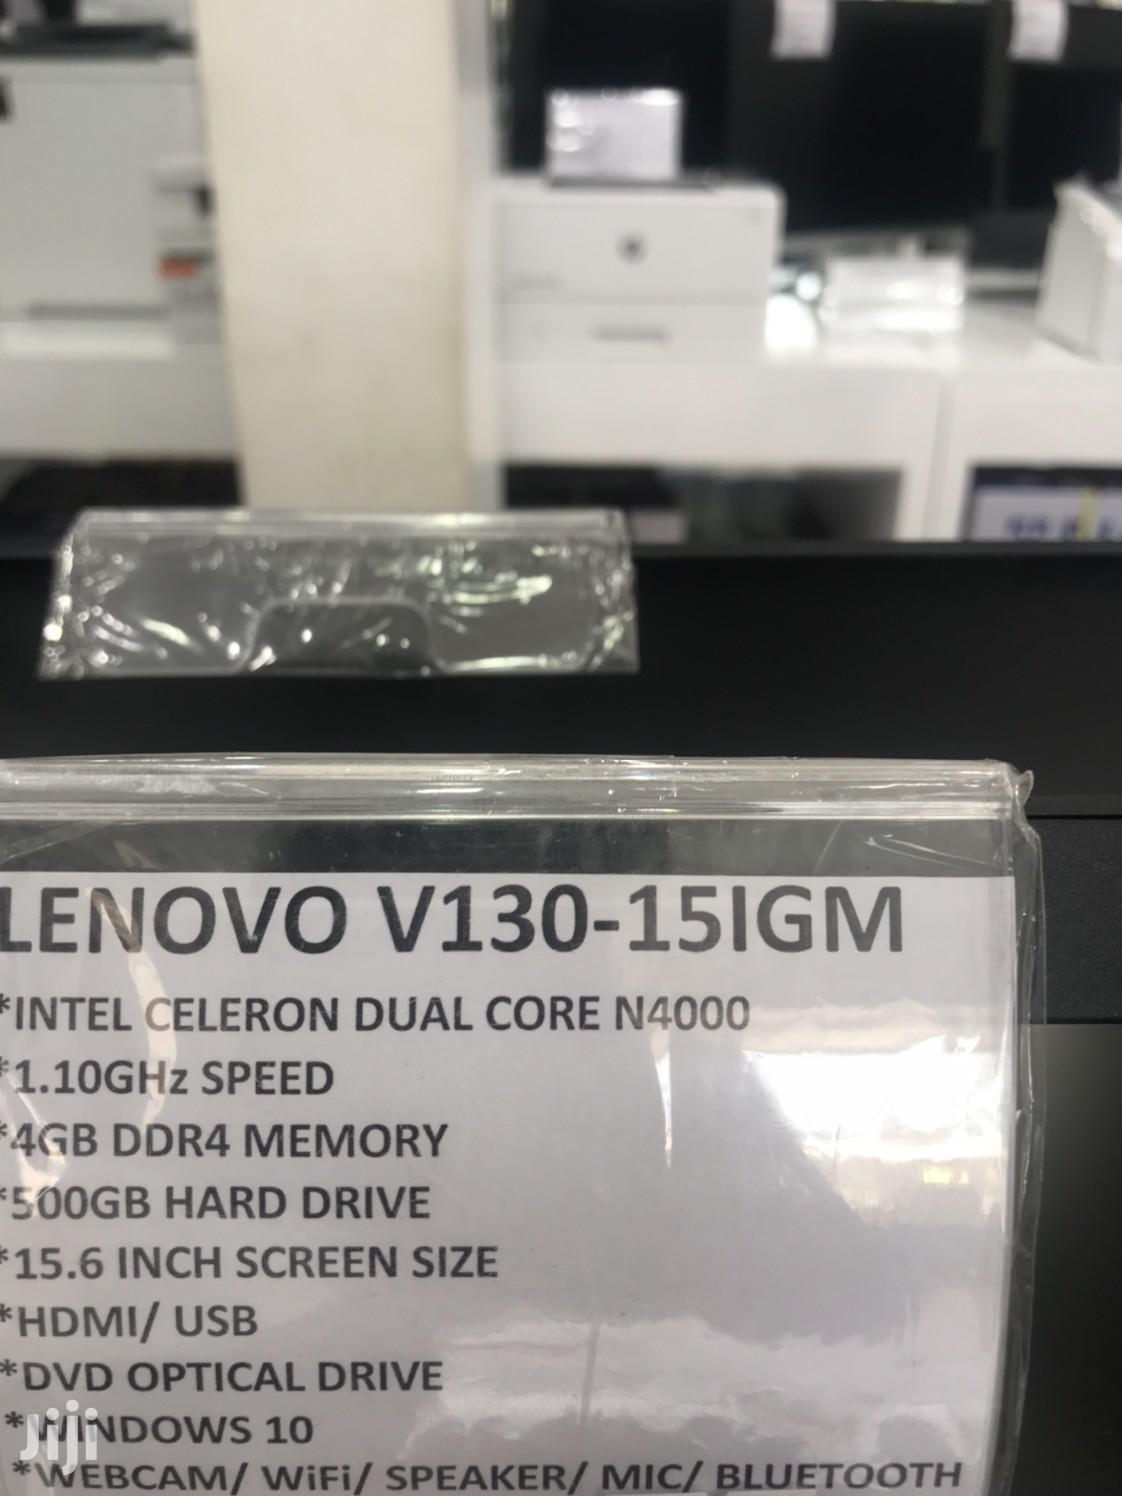 New Laptop Lenovo IdeaPad 330 4GB Intel Celeron HDD 500GB | Laptops & Computers for sale in Kokomlemle, Greater Accra, Ghana